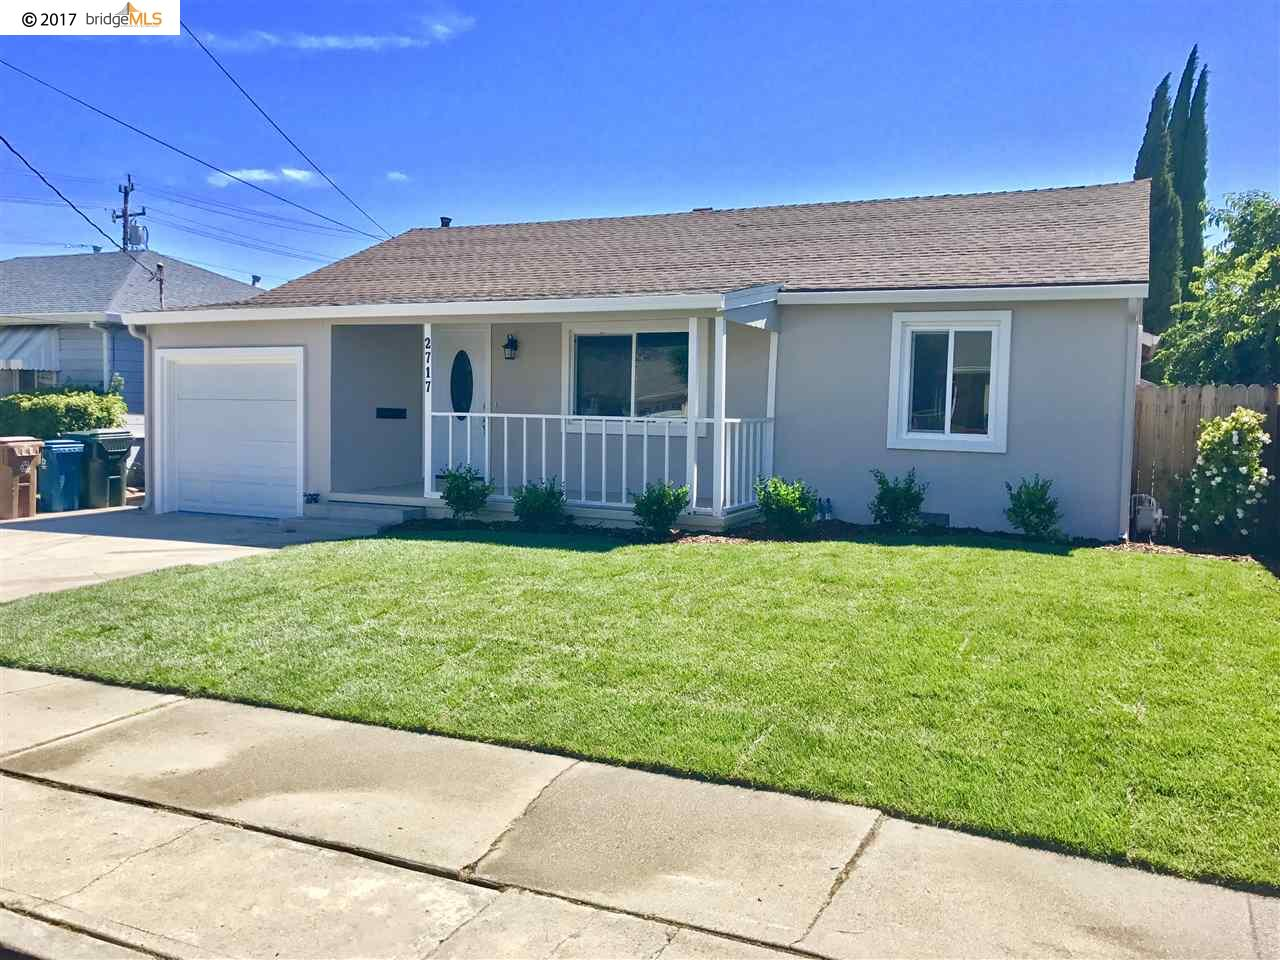 Single Family Home for Sale at 2717 El Rey Street Antioch, California 94509 United States